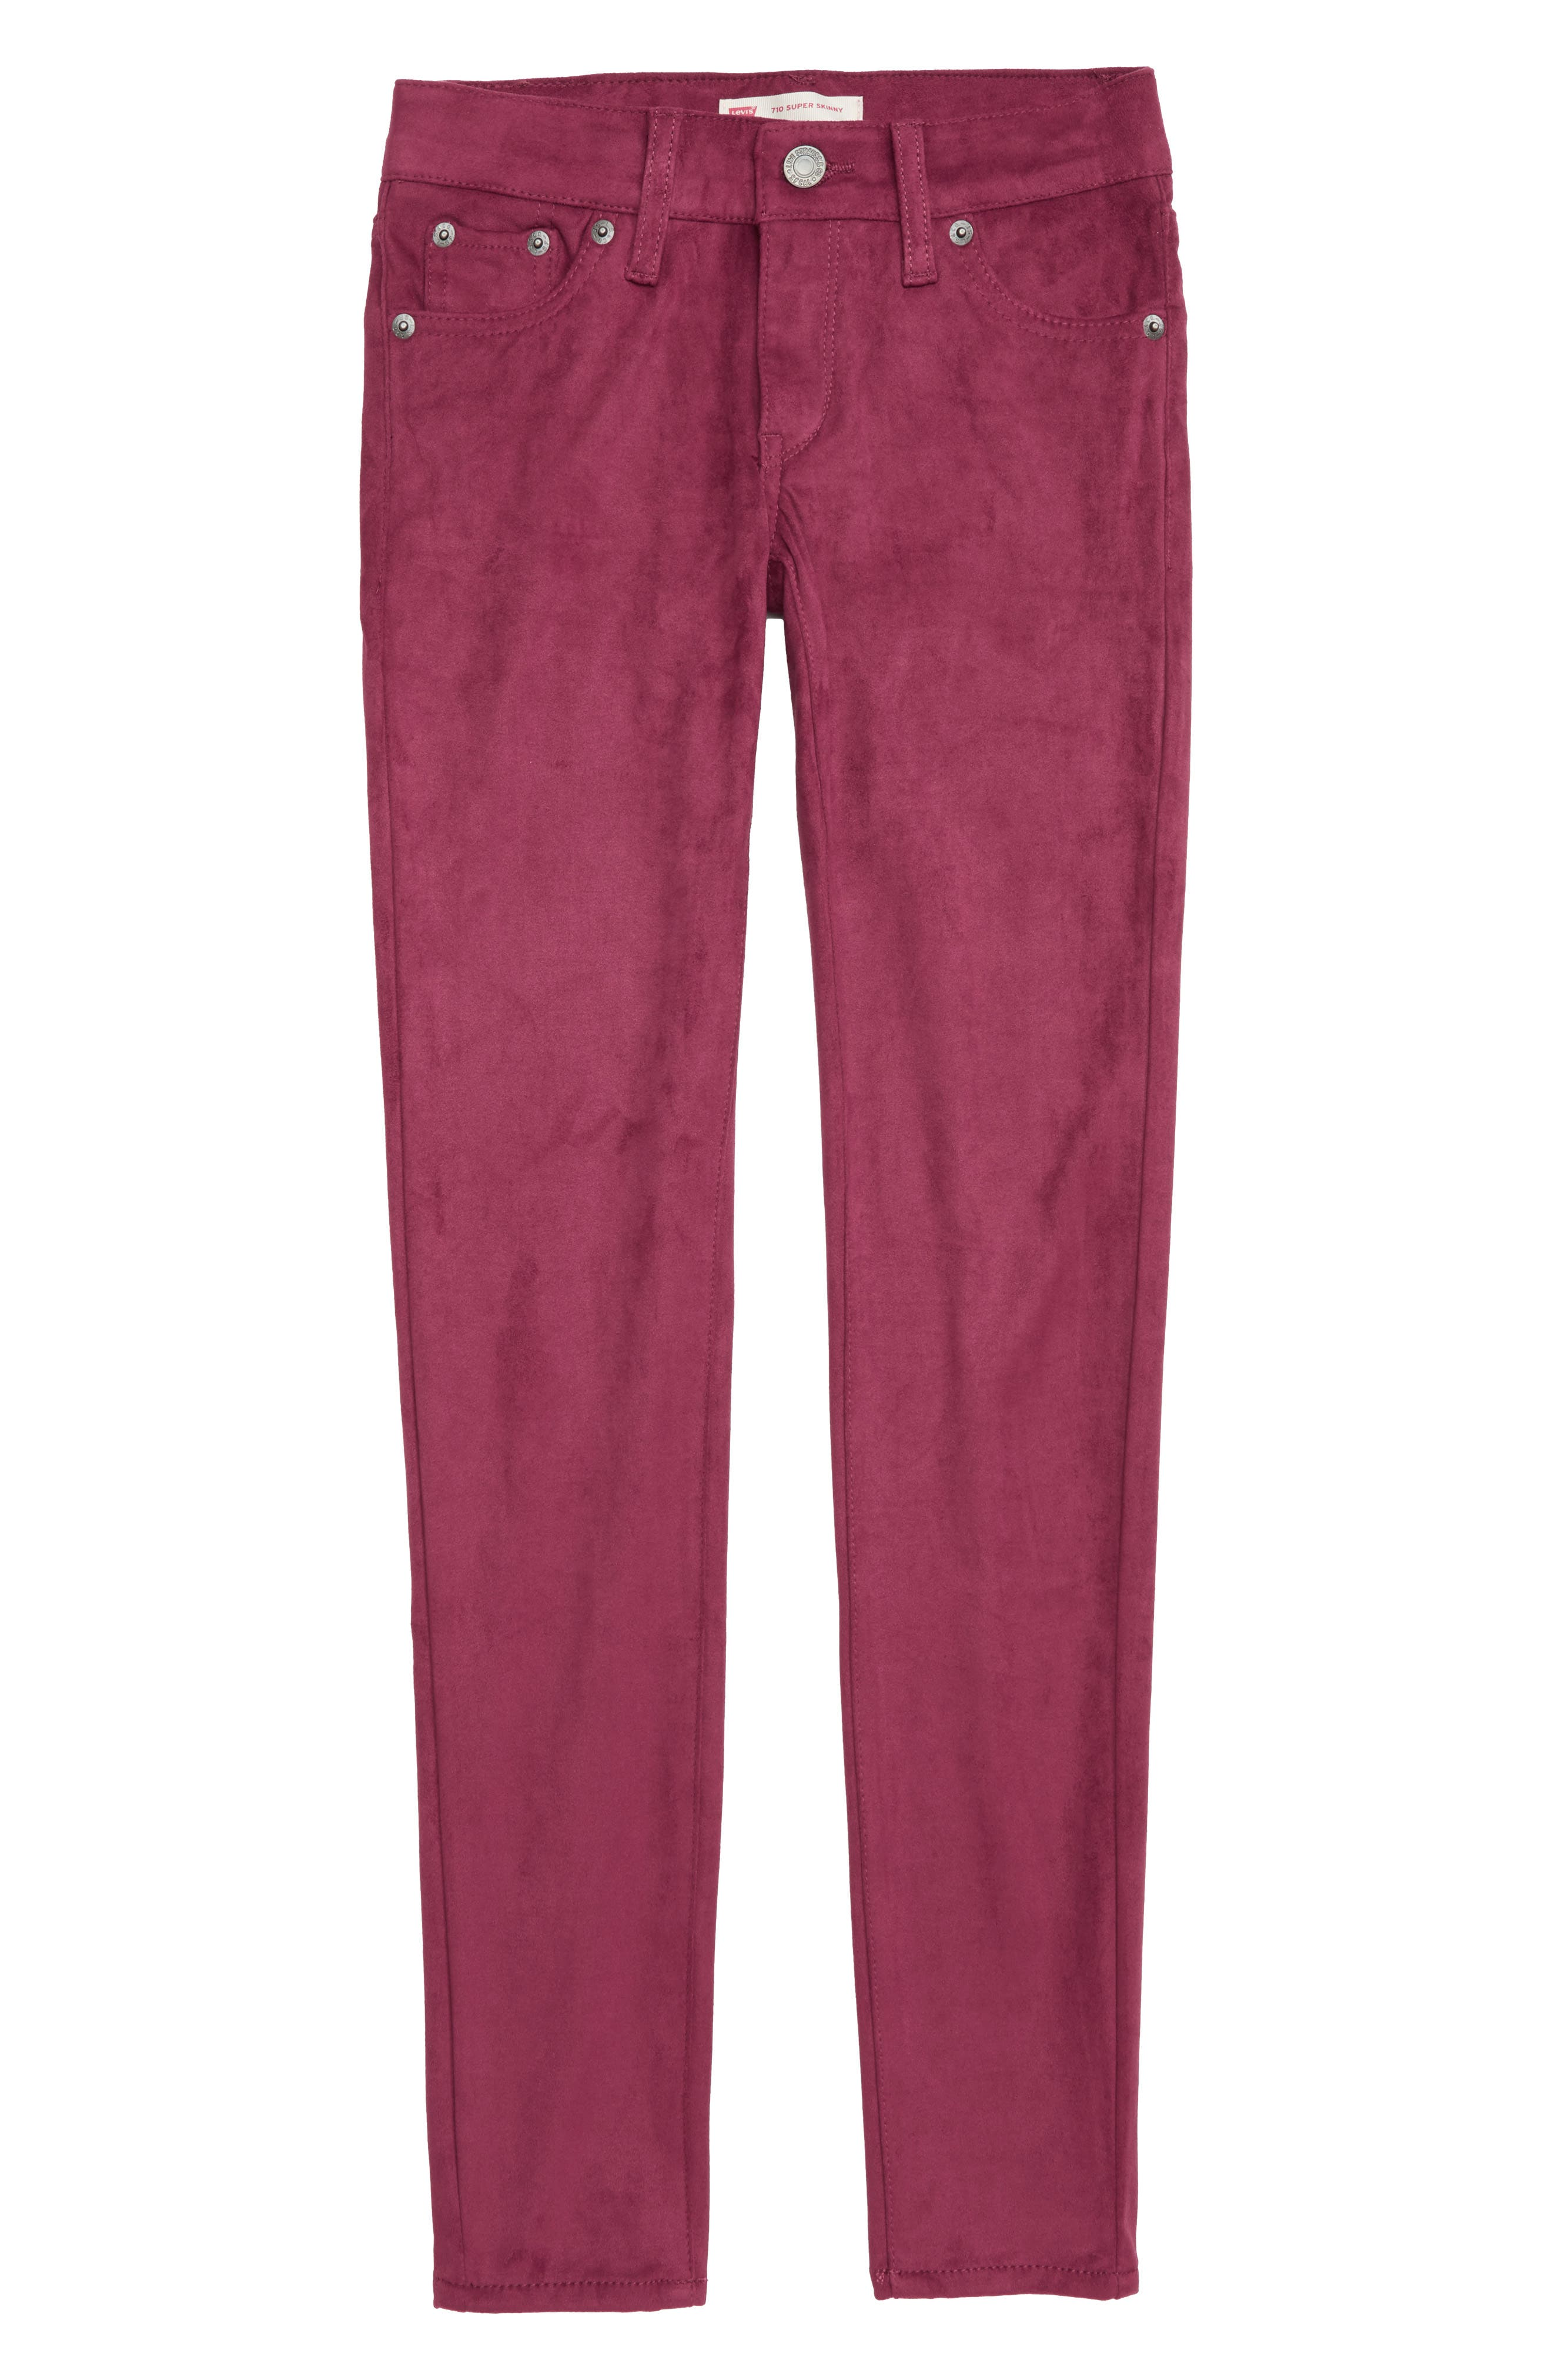 710<sup>™</sup> Super Skinny Faux Suede Jeans,                             Main thumbnail 1, color,                             BEET RED